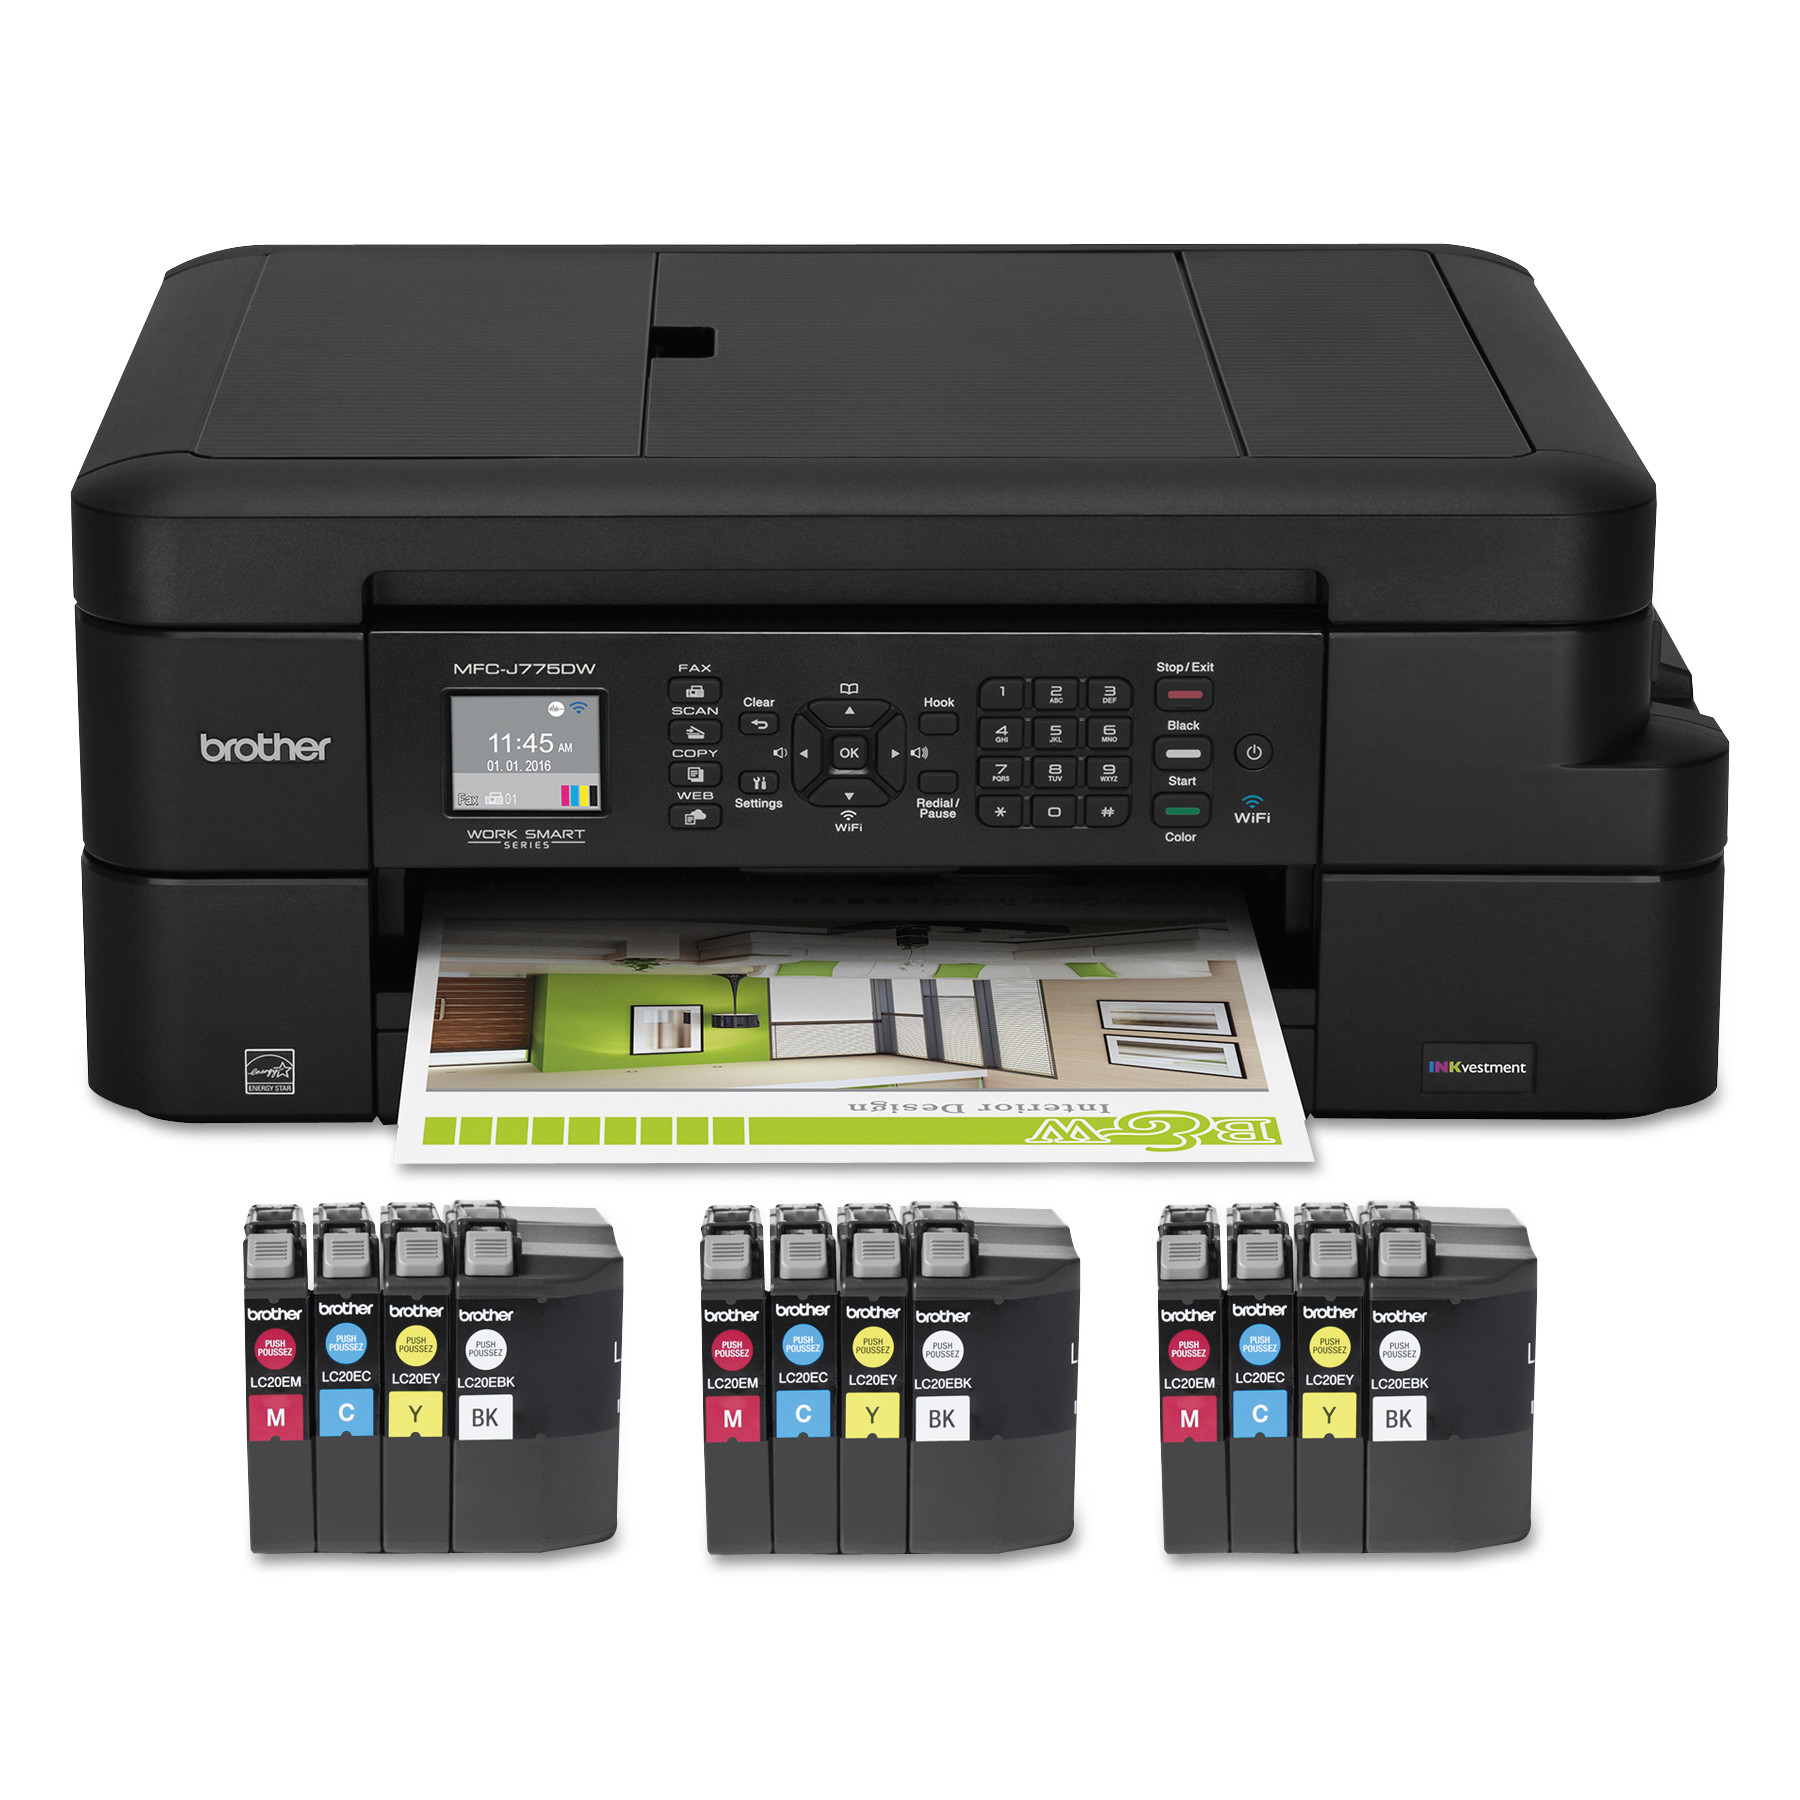 MFCJ775DWXL All-In-One Inkjet Printer, Copy/Fax/Print/Scan